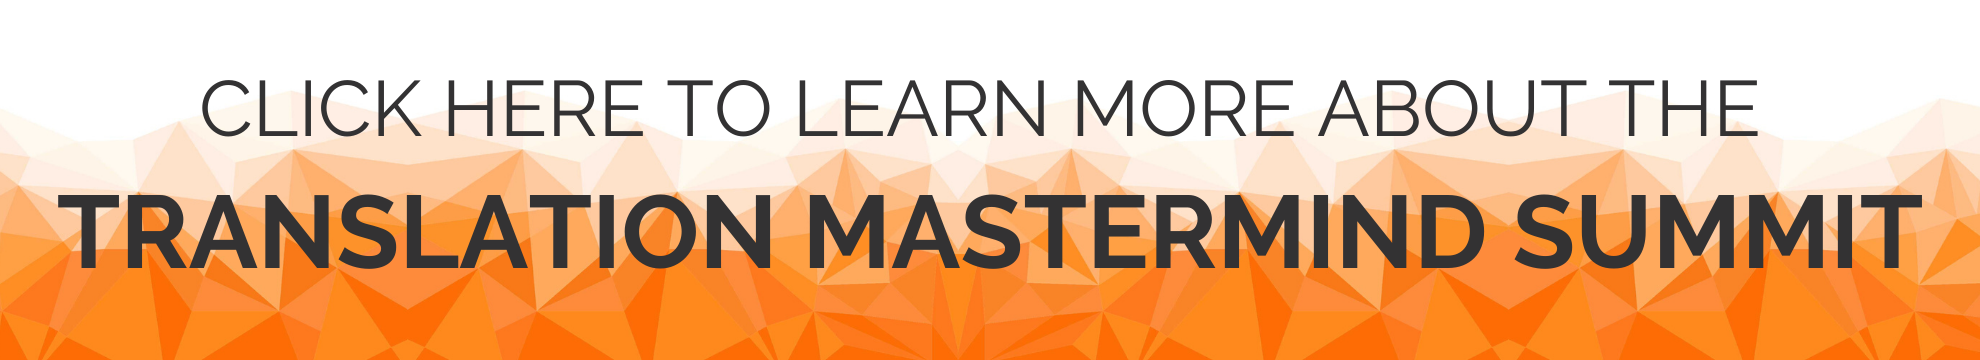 Click Here To Learn more about the Translation Mastermind Summit